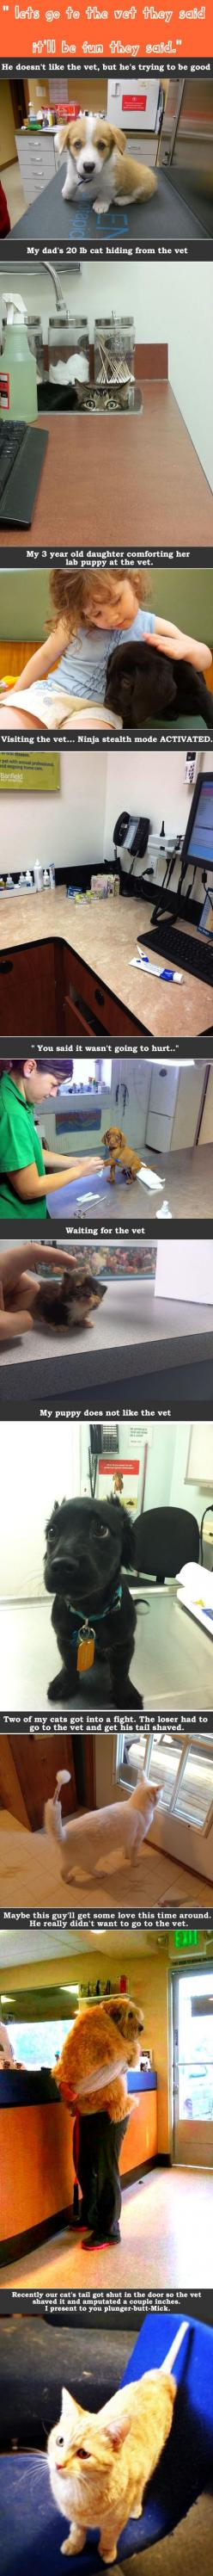 visits to the vet: Funny Pets, Funny Animals, Dogs And Cats, Animal Funnies, Baby Kittens, Cute Animals, Vet Tech, So Funny